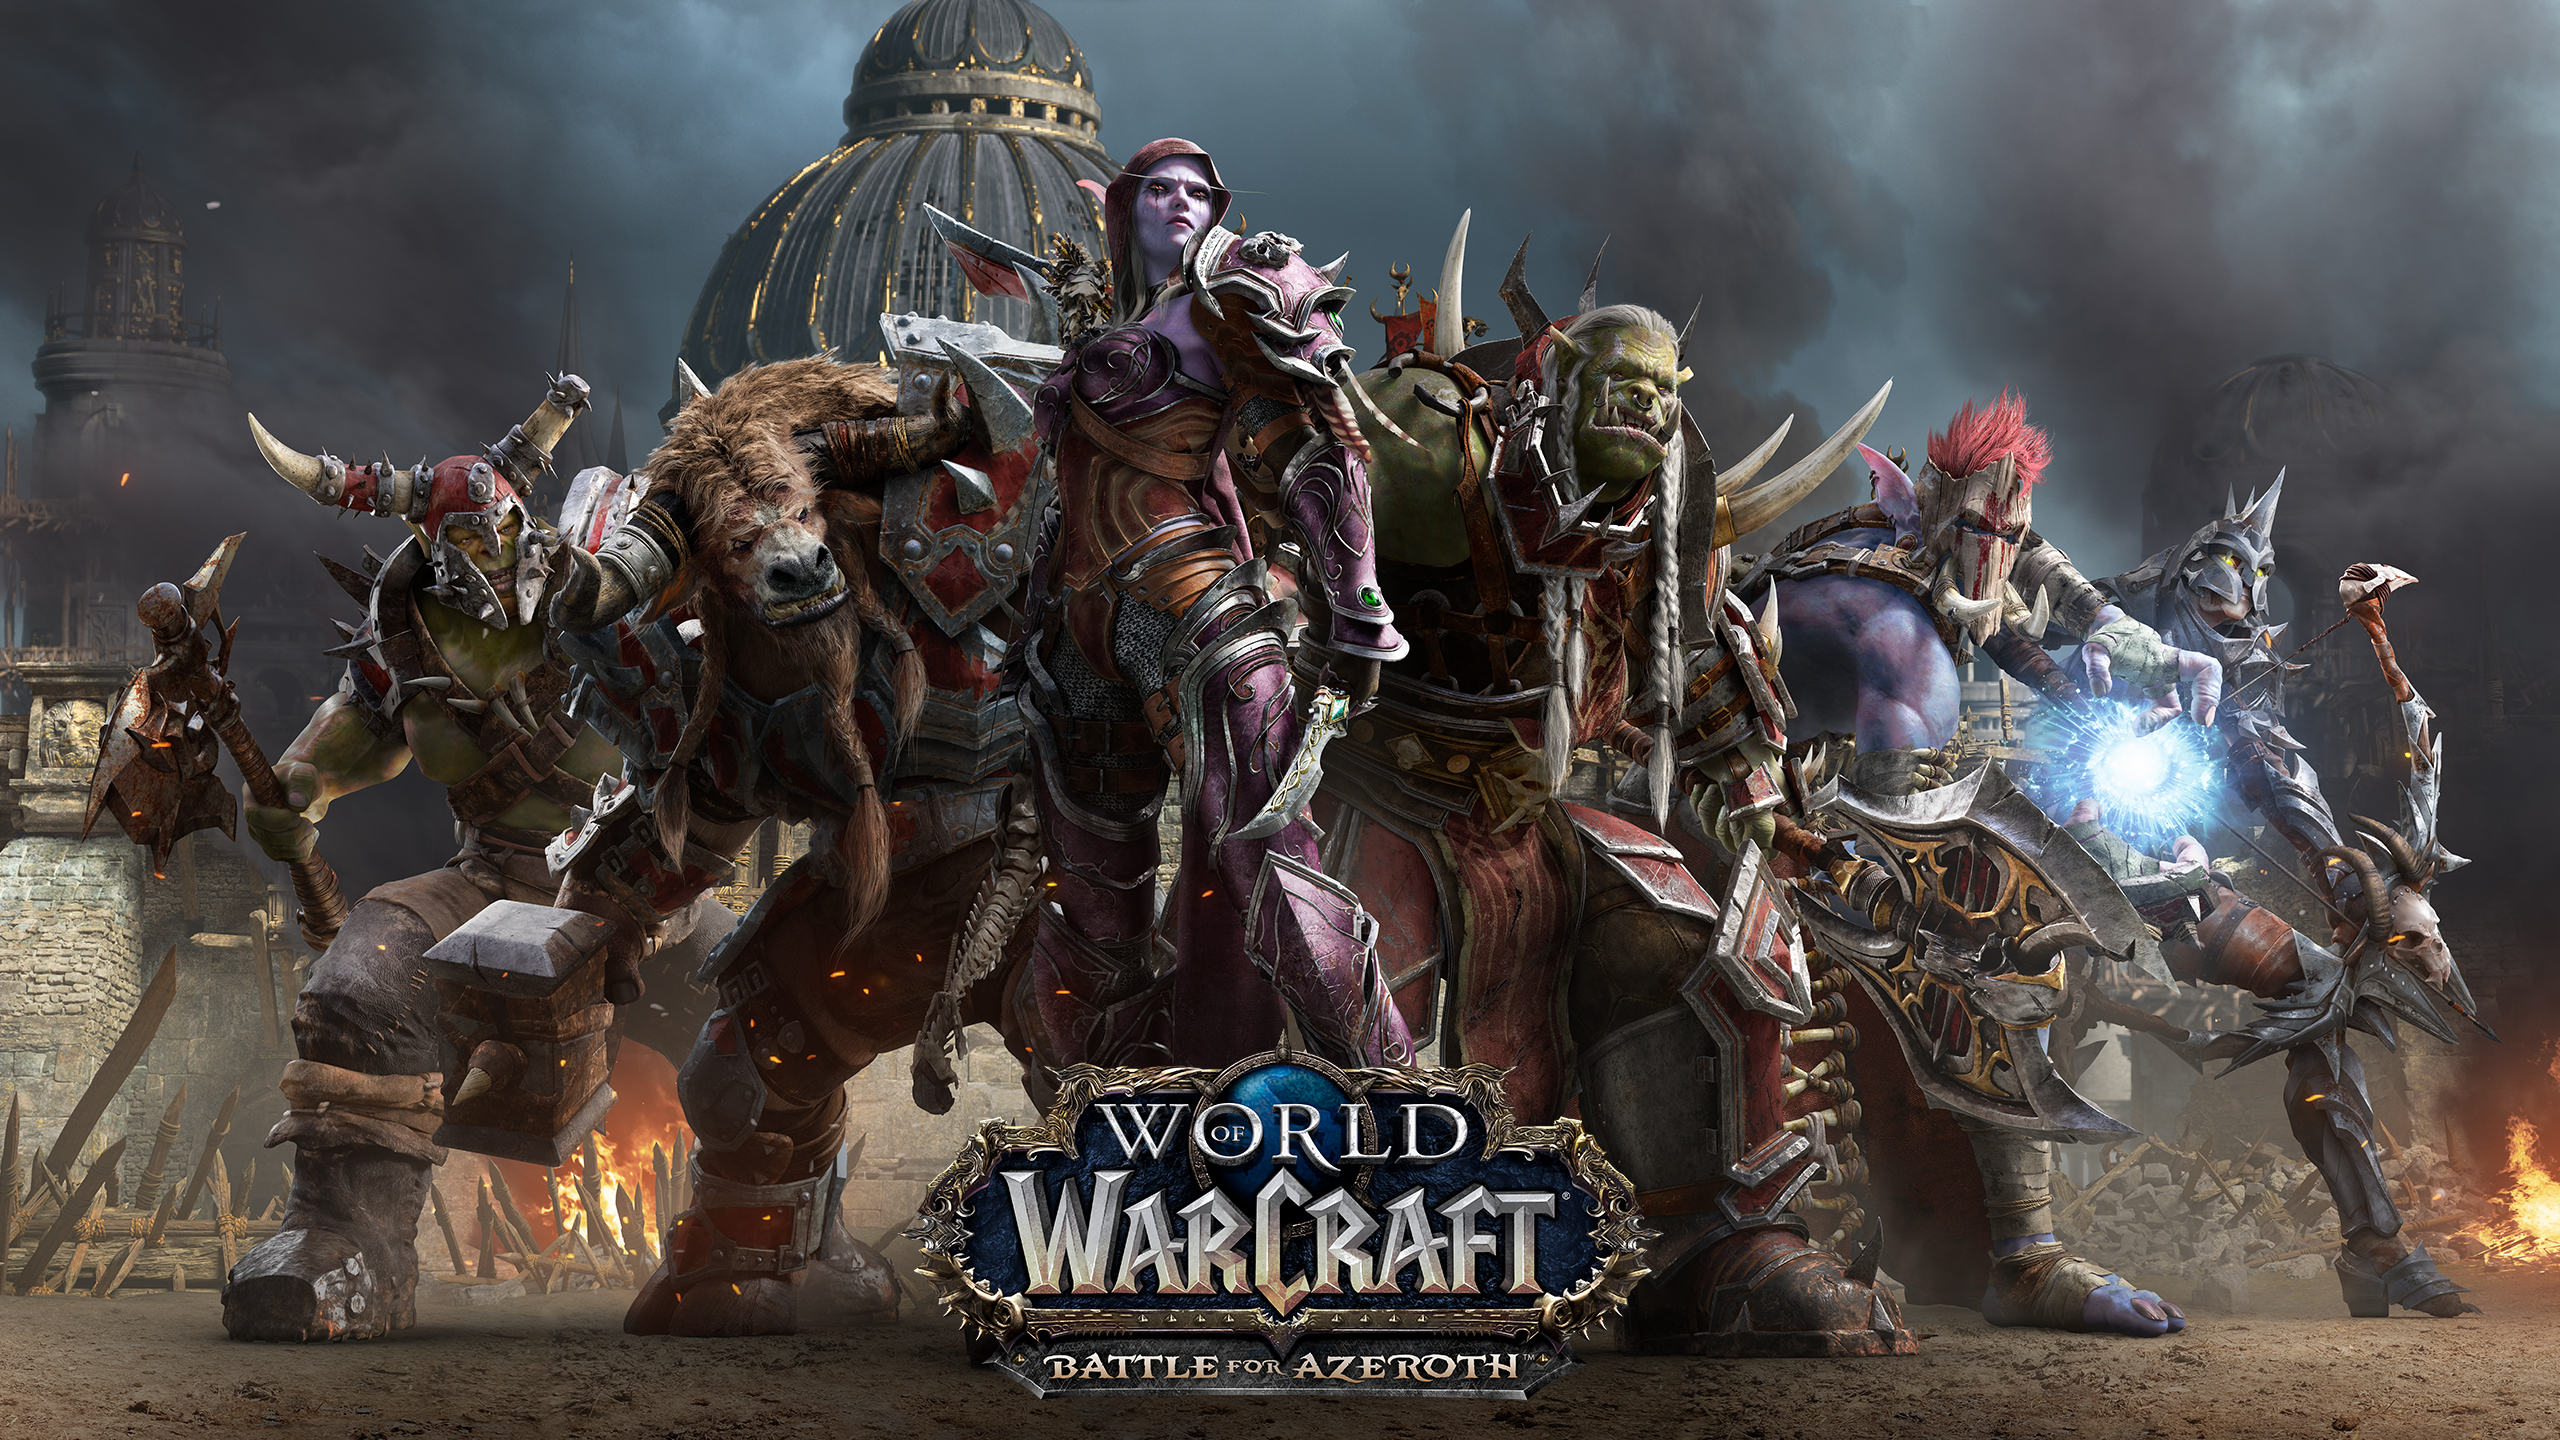 World Of Warcraft Wallpaper Bfa: Battle For Azeroth Wallpaper [2560x1440] : Wow